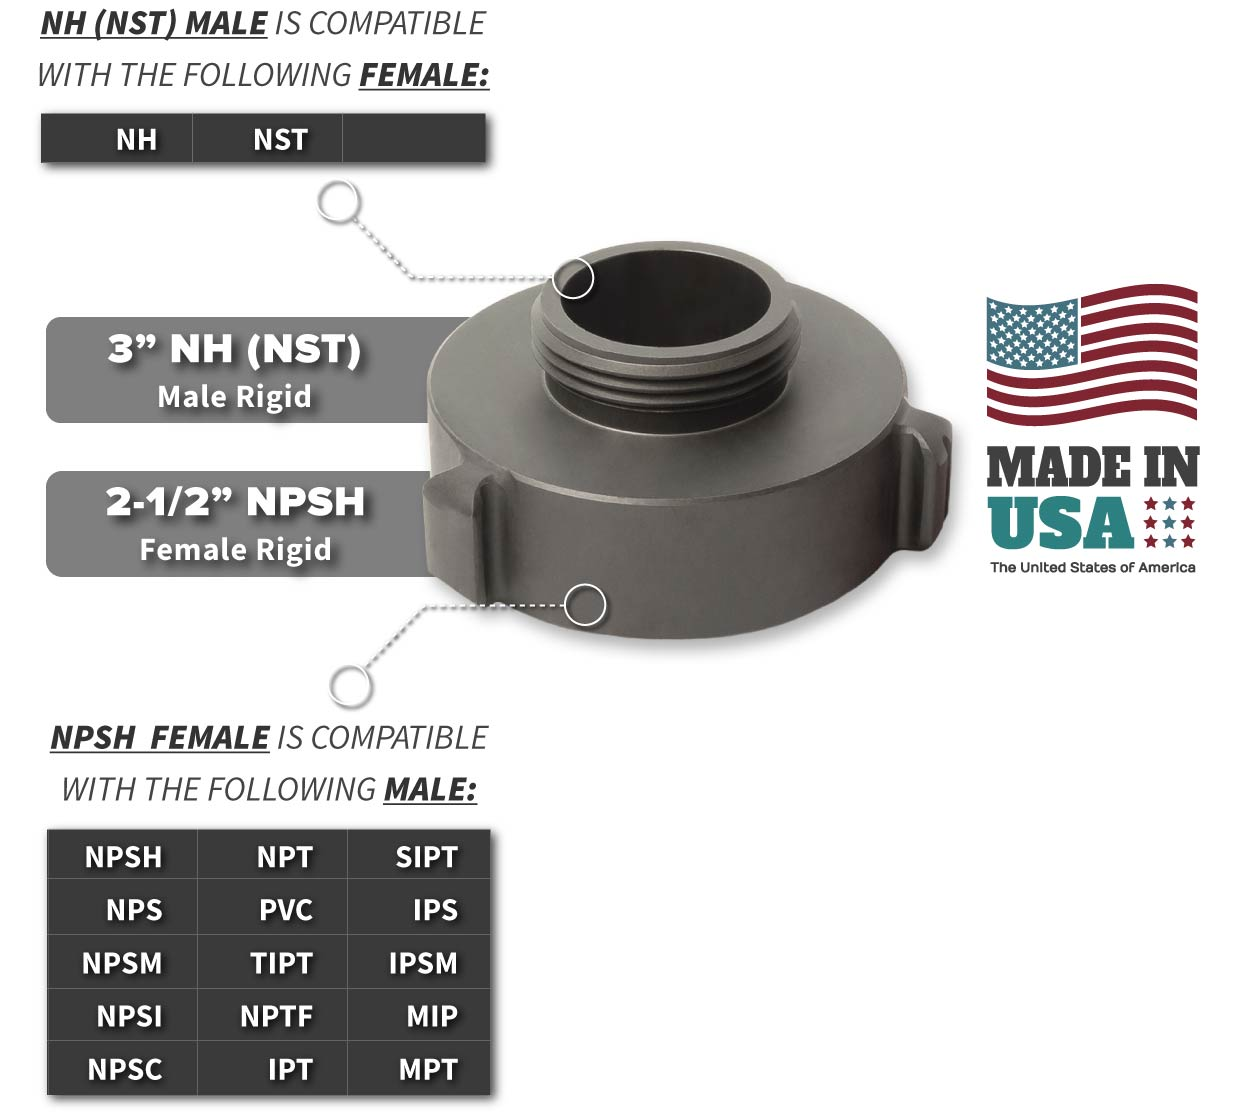 2.5 Inch NPSH Female x 3 Inch NH-NST Male Compatibility Thread Chart